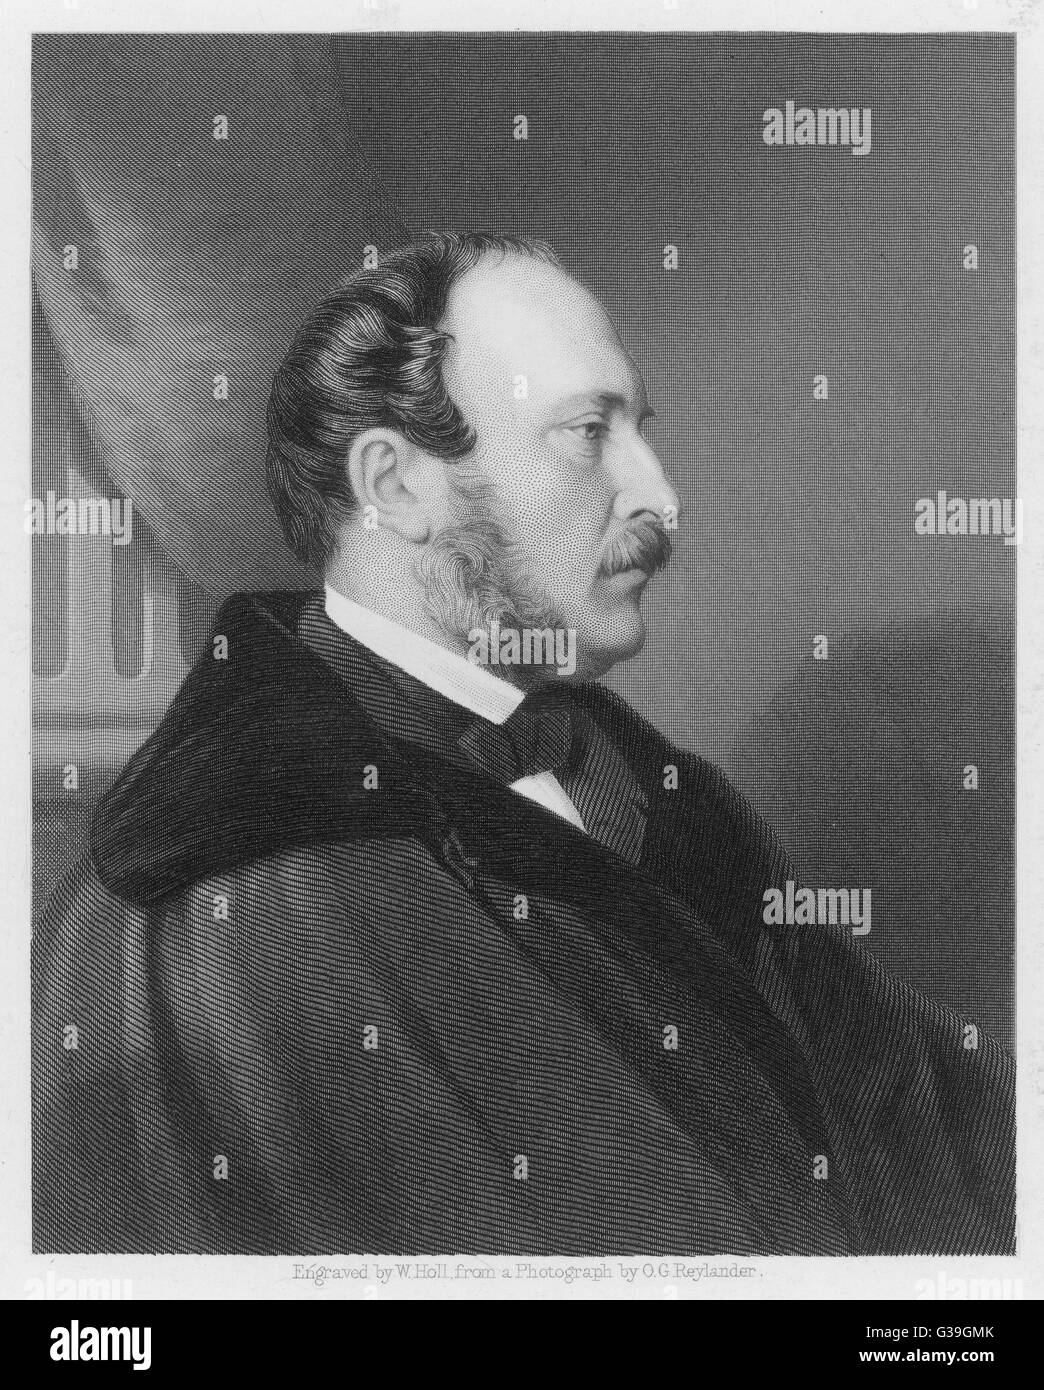 PRINCE ALBERT, CONSORT OF  QUEEN VICTORIA   Engraving of the distinguished  profile of Prince Albert.     Date: - Stock Image